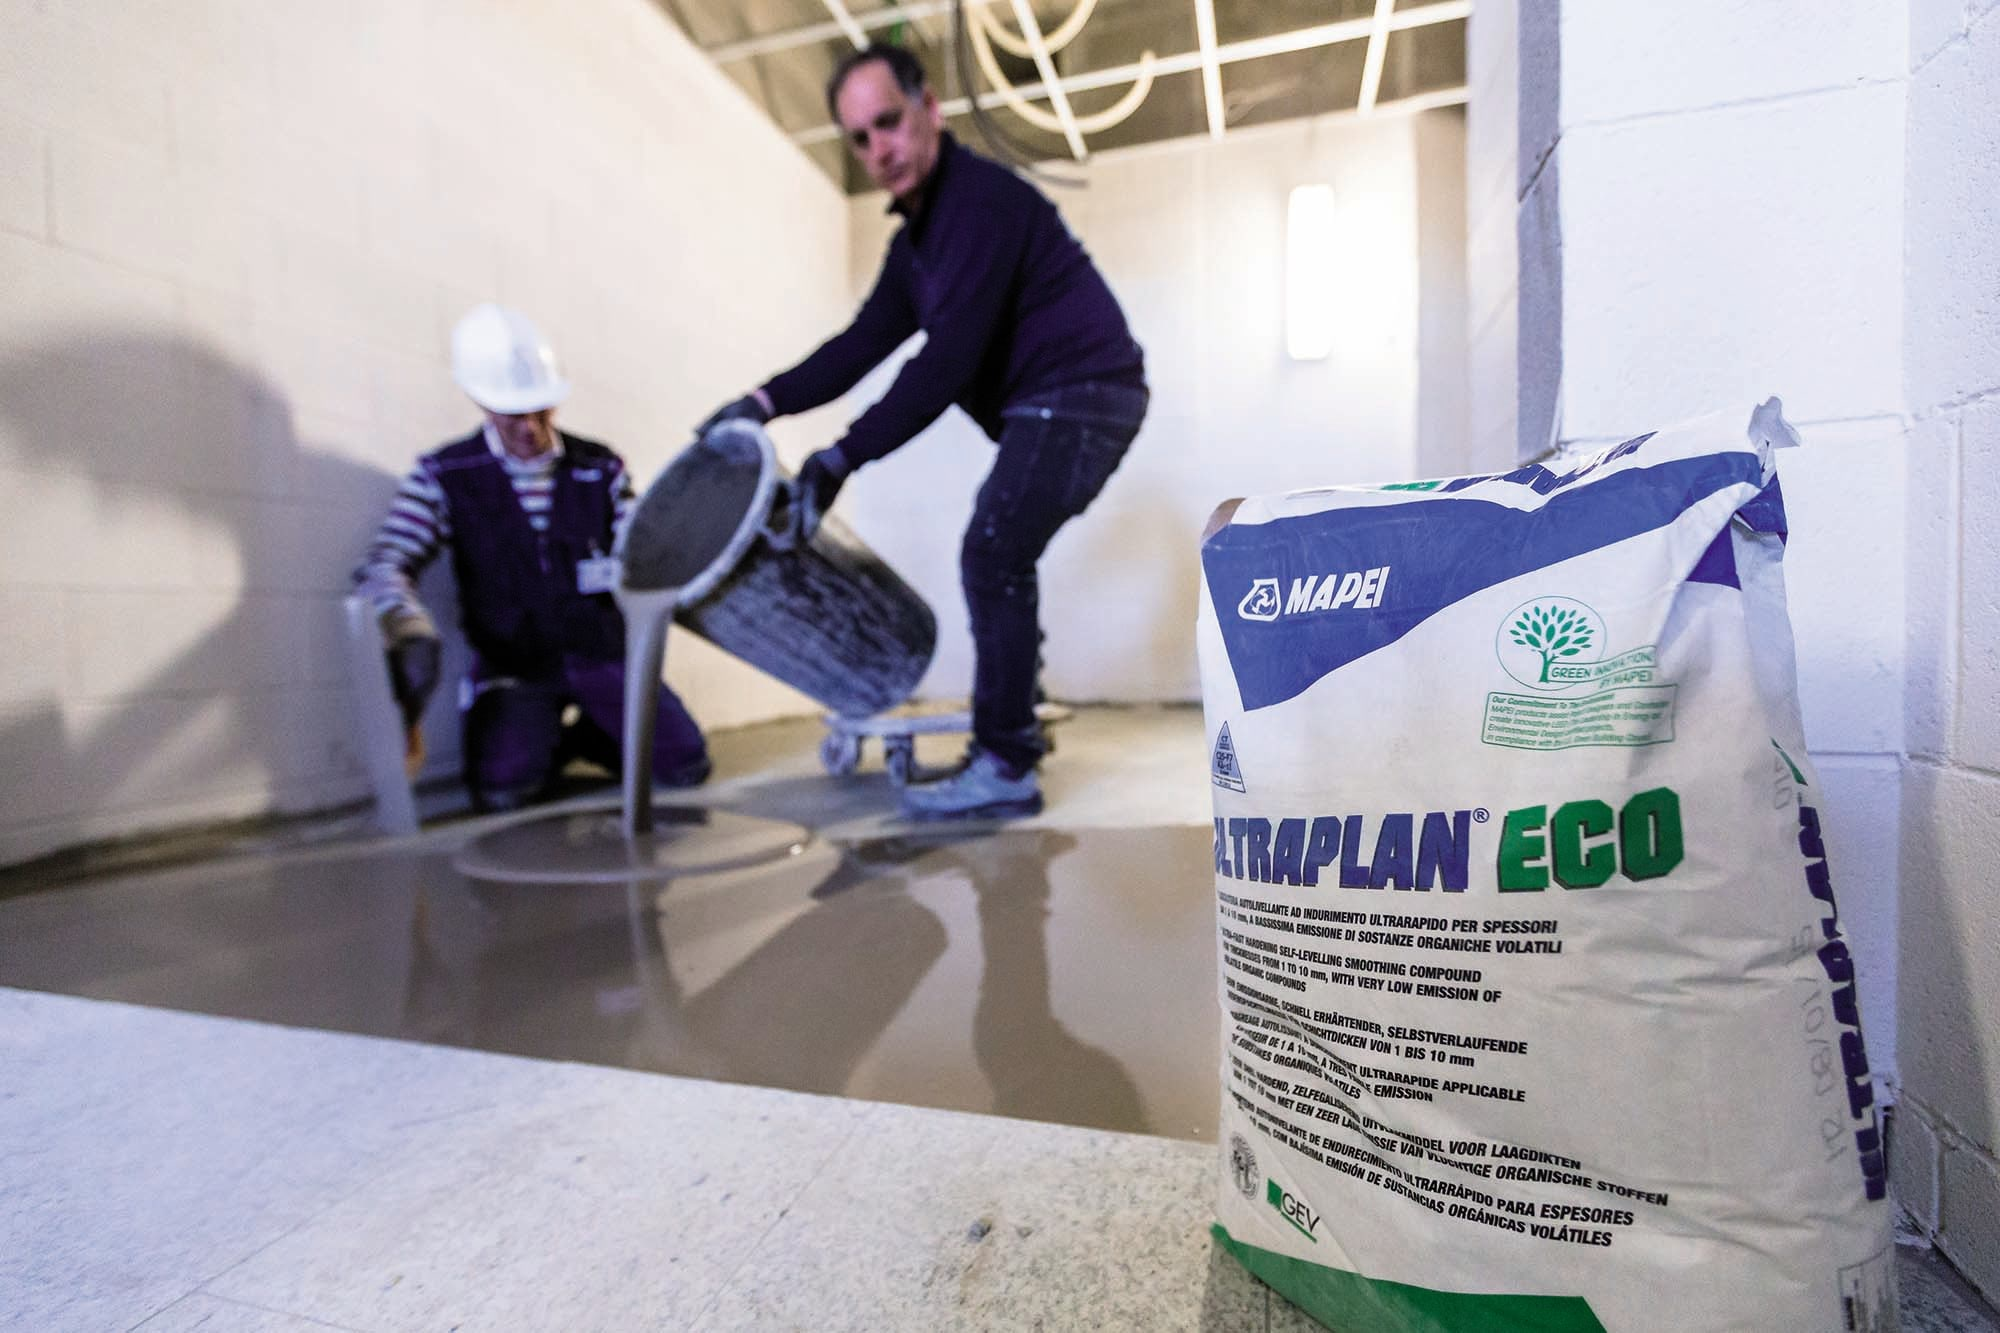 Mapei's Ultraplan Eco applied at the San Gerardo Hospital in Monza Italy